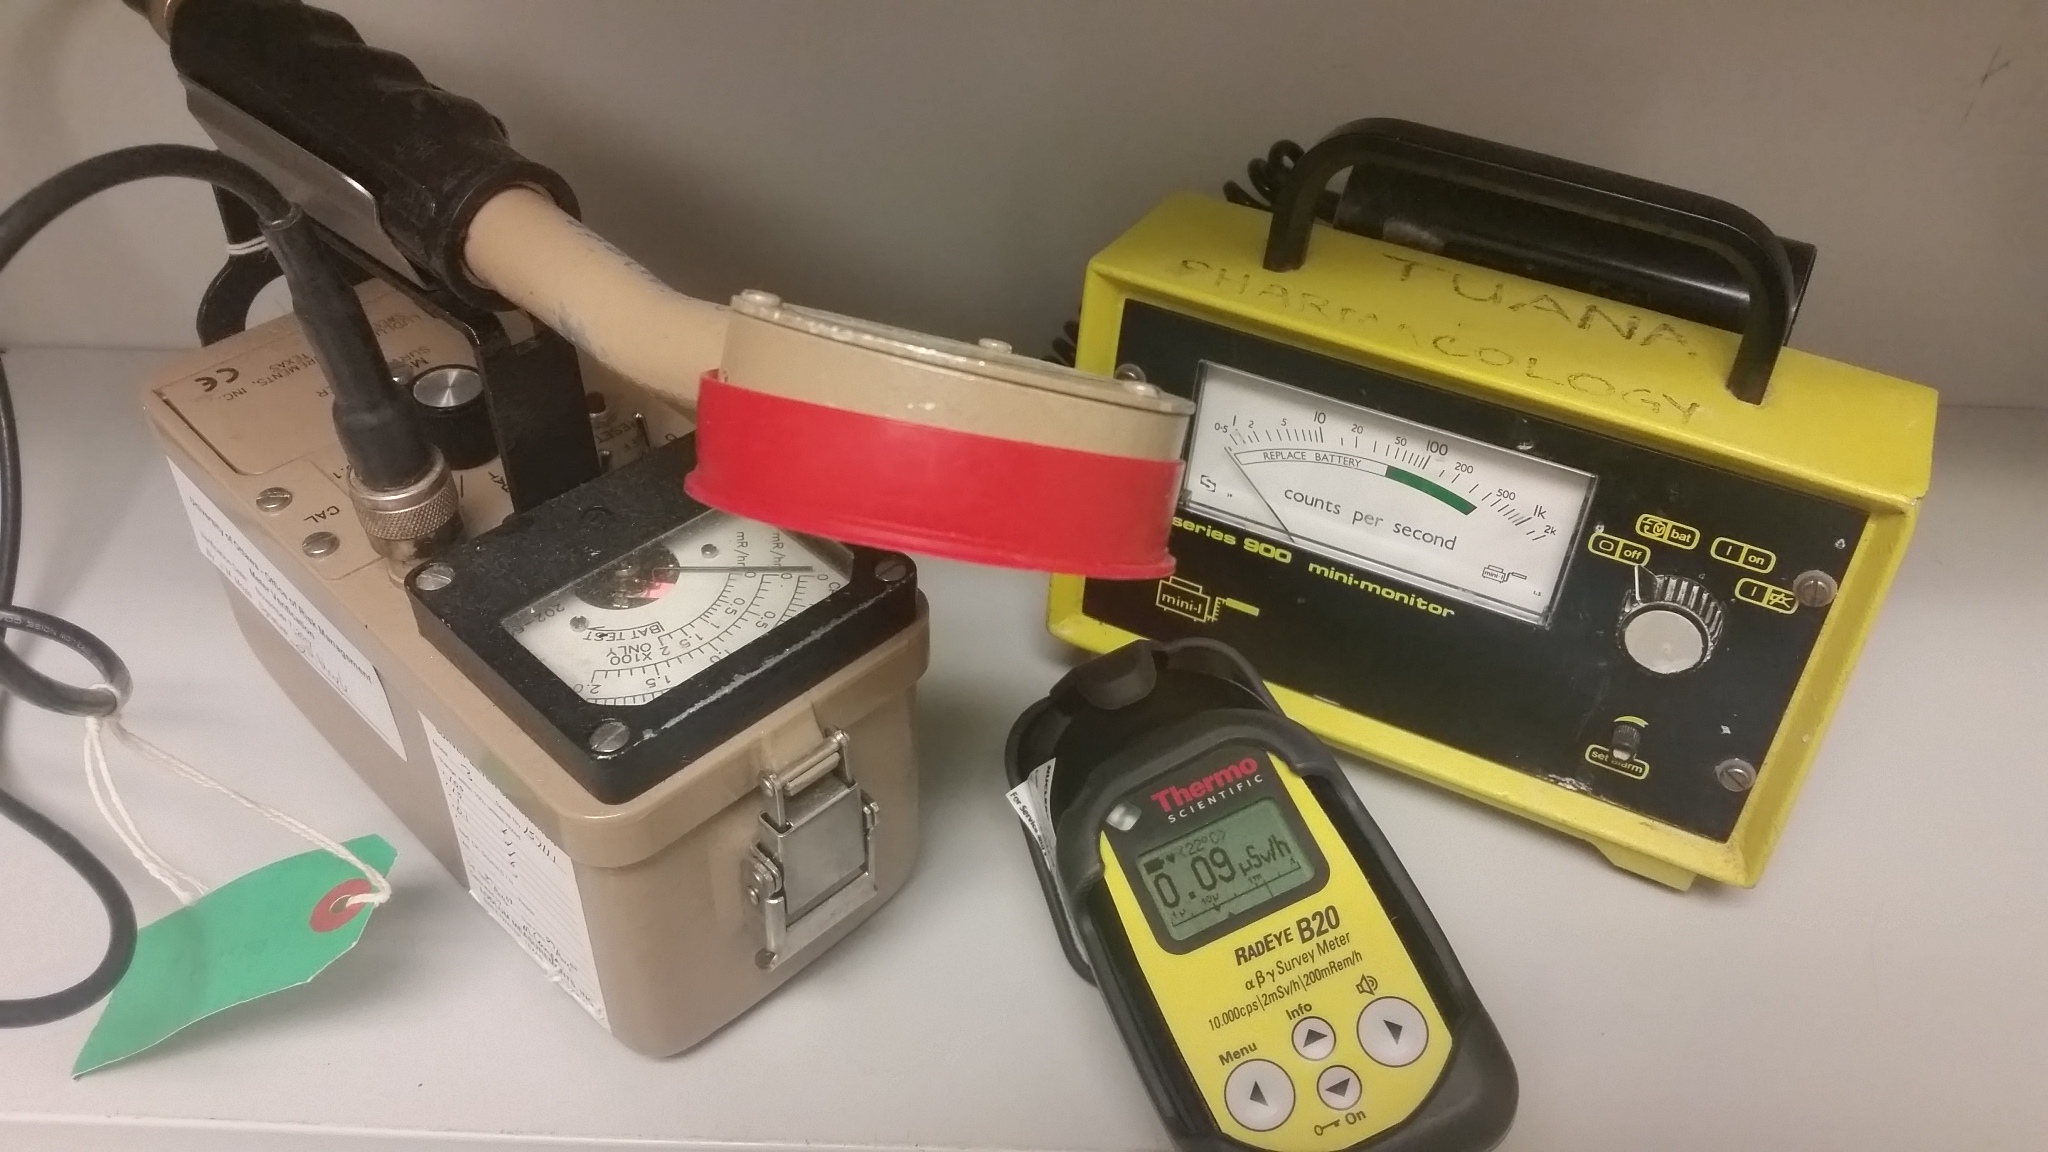 To ensure your survey meter capable of detecting the radioisotopes that you are using